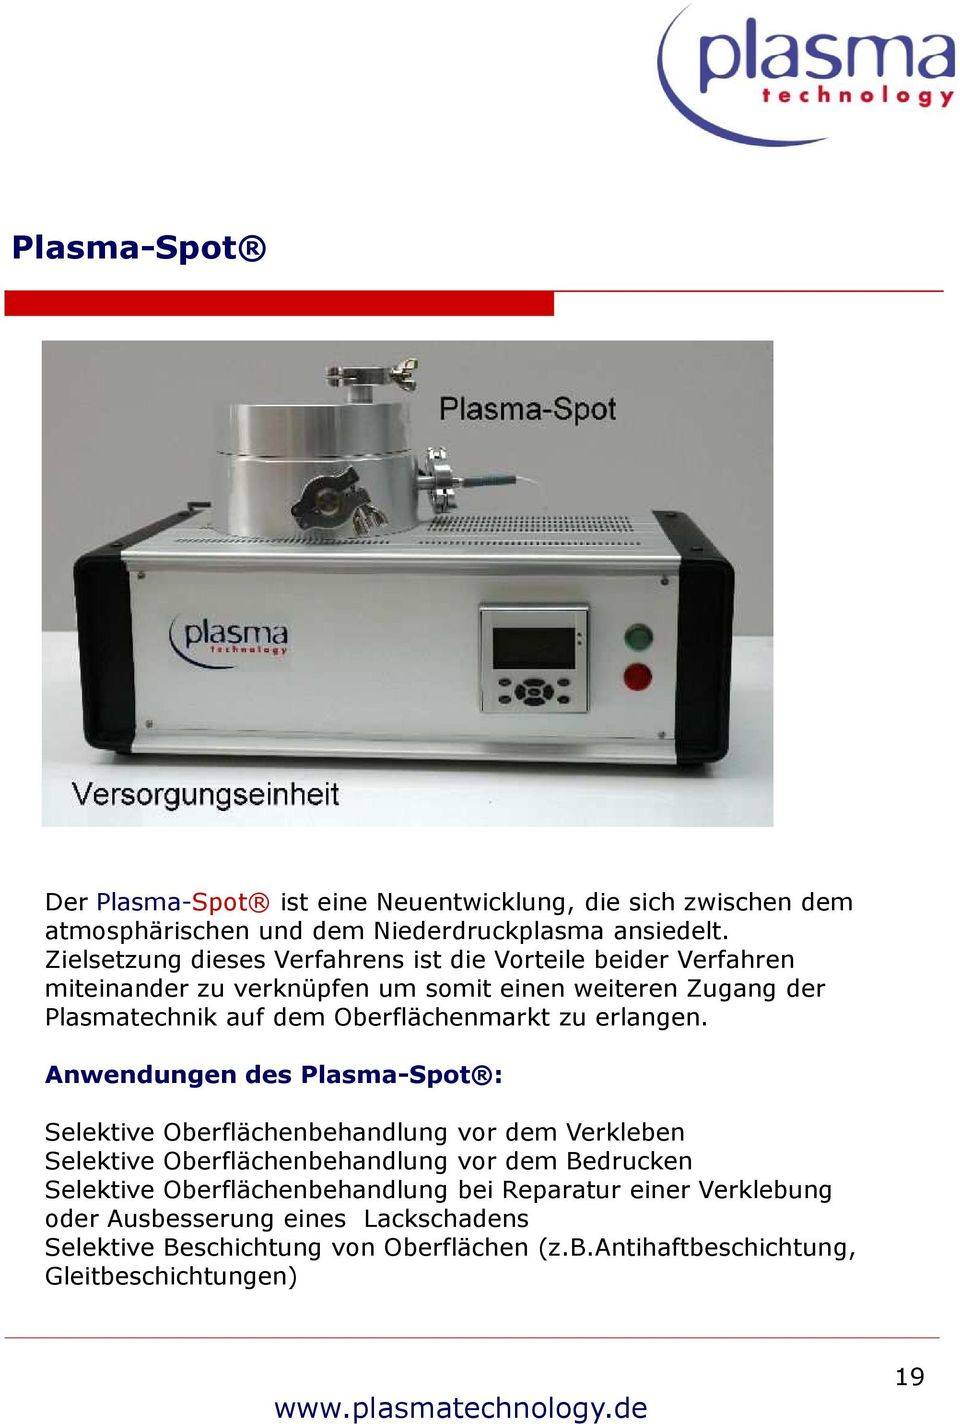 diener electronic nagold